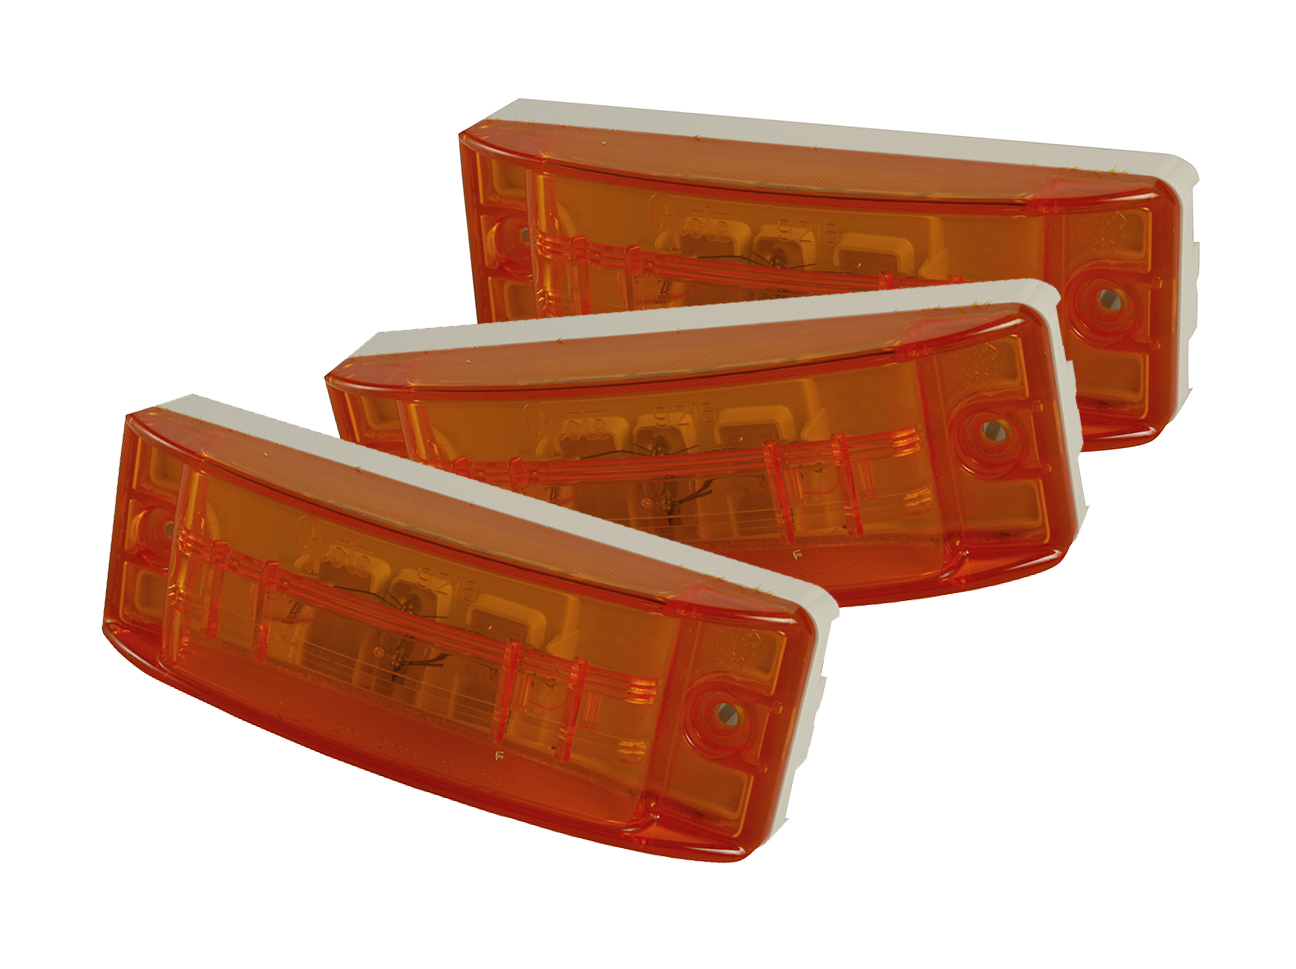 Grote Industries - 46833-3 – Sealed Turtleback® II Clearance/Marker Lamp, Optic Lens, Yellow, Bulk Pack